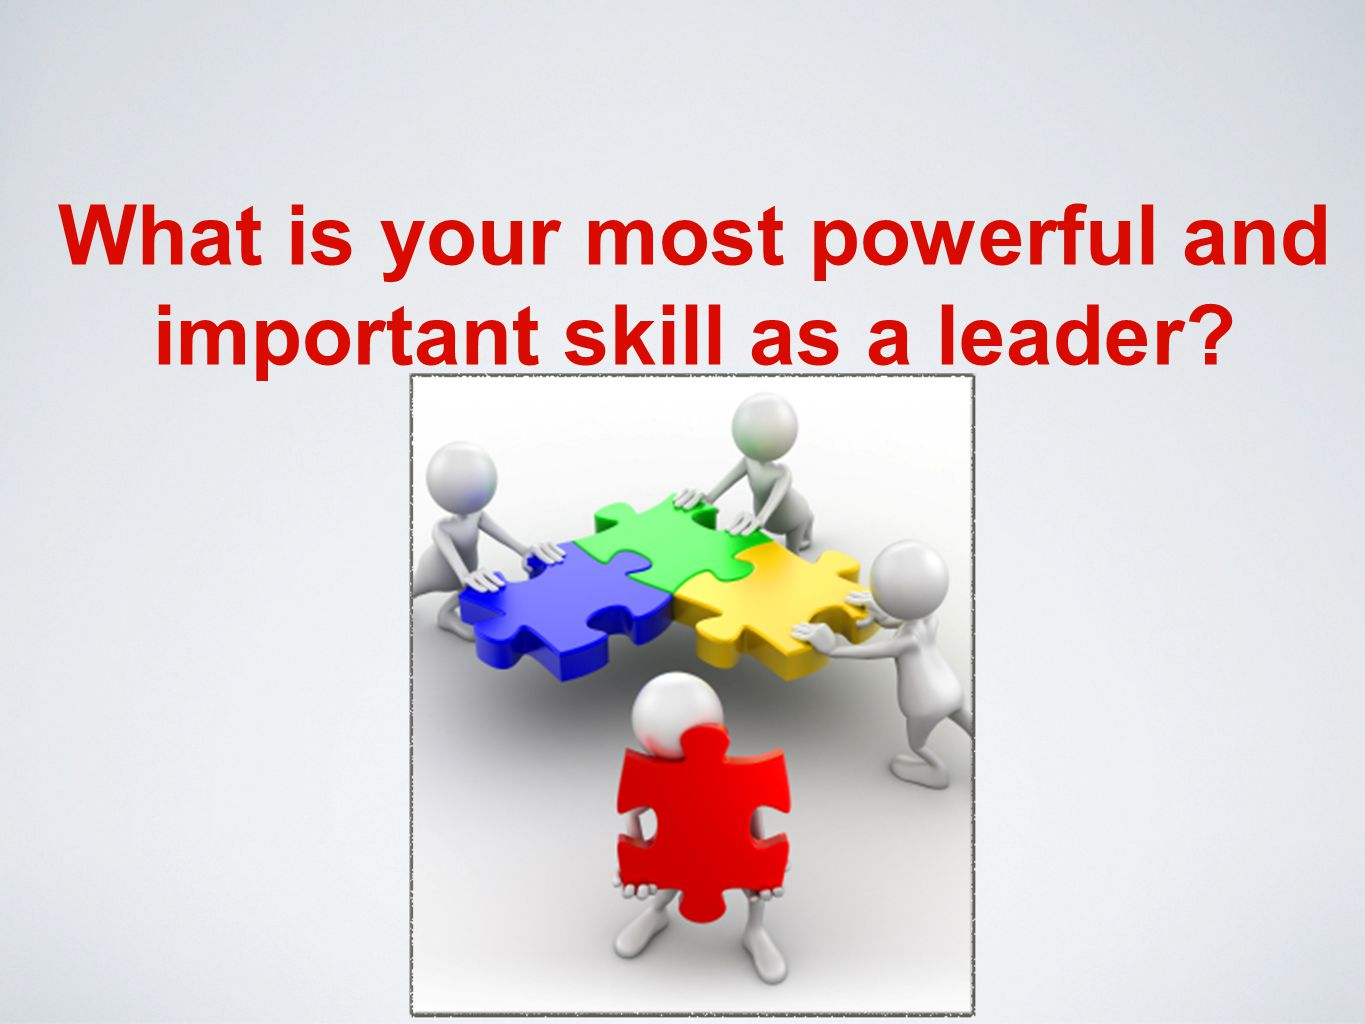 What is your most powerful and important skill as a leader?